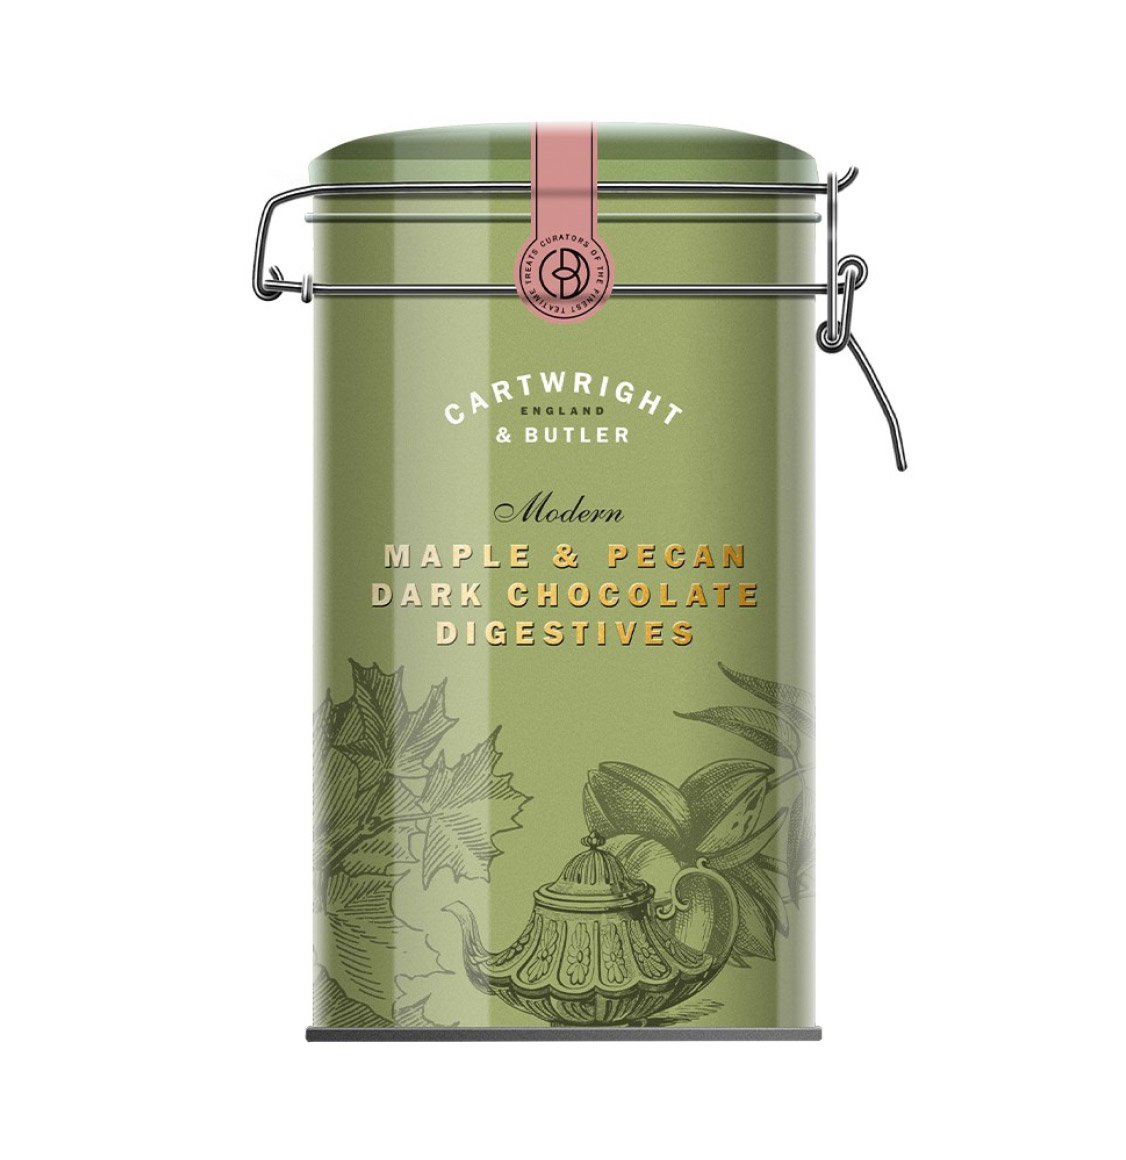 Cartwright_And_Butler_Maple_And_Pecan_Digestive_Biscuits_in_Tin_The_Project_Garments_A